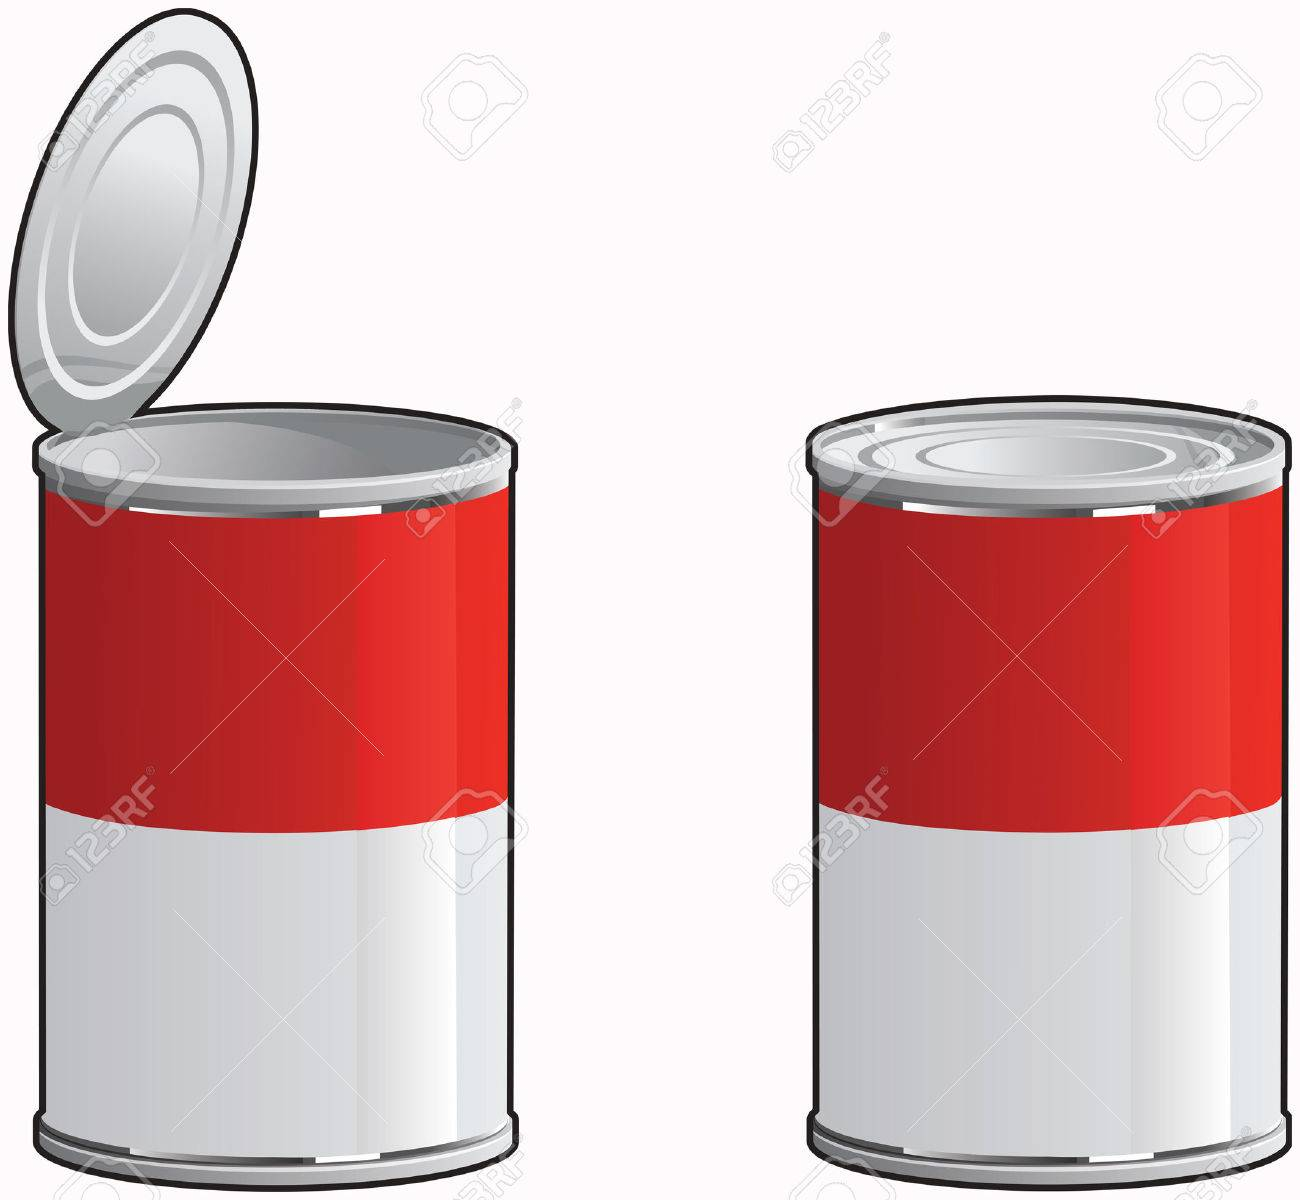 Generic soup cans with and without lid removed. Stock Vector - 3160450